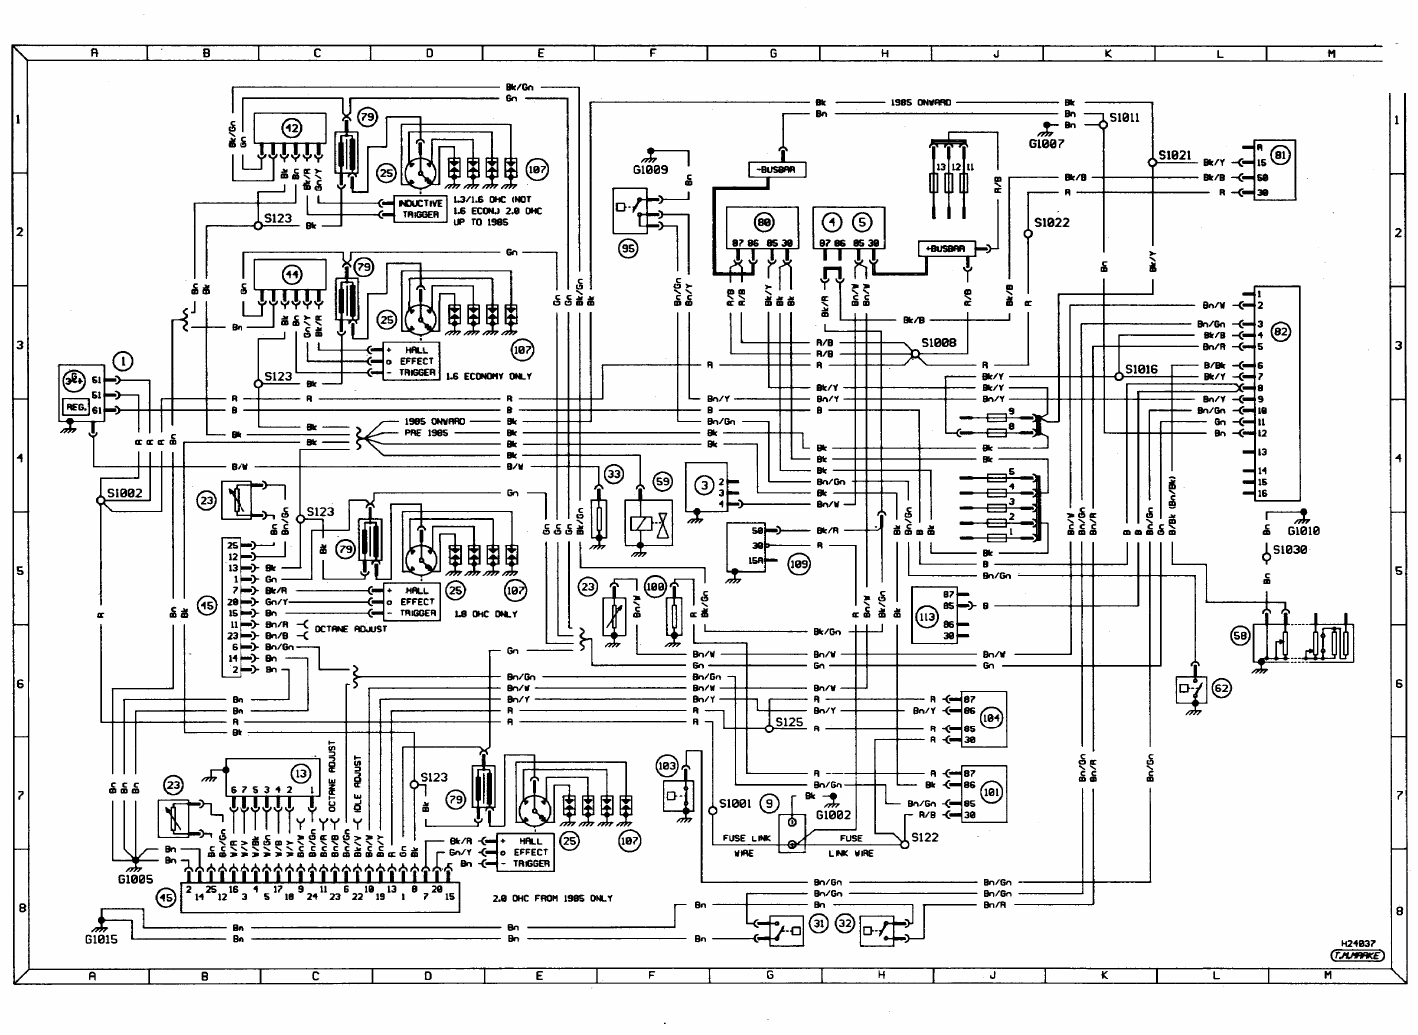 Ford Sierra Wiring Diagram Just Schematic For 1983 Nighthawk 650 Workshop Manual Pdf Alpenlite